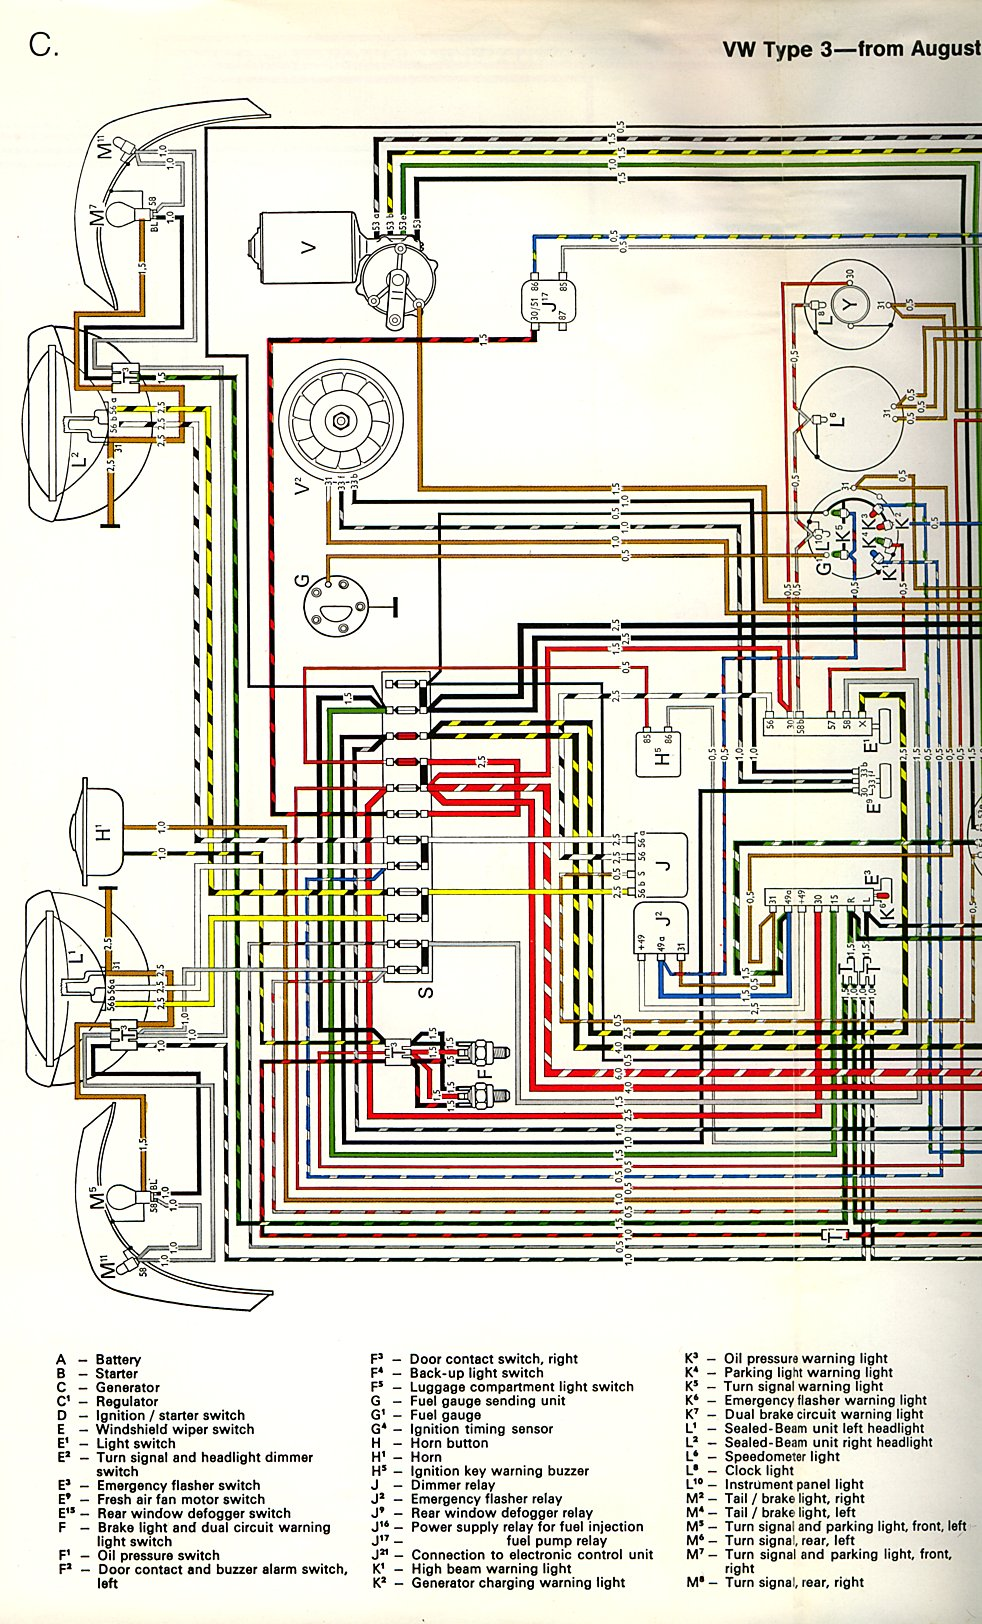 thesamba com type 3 wiring diagrams rh thesamba com VW Squareback Fuse Wiring VW Wiring Harness Diagram